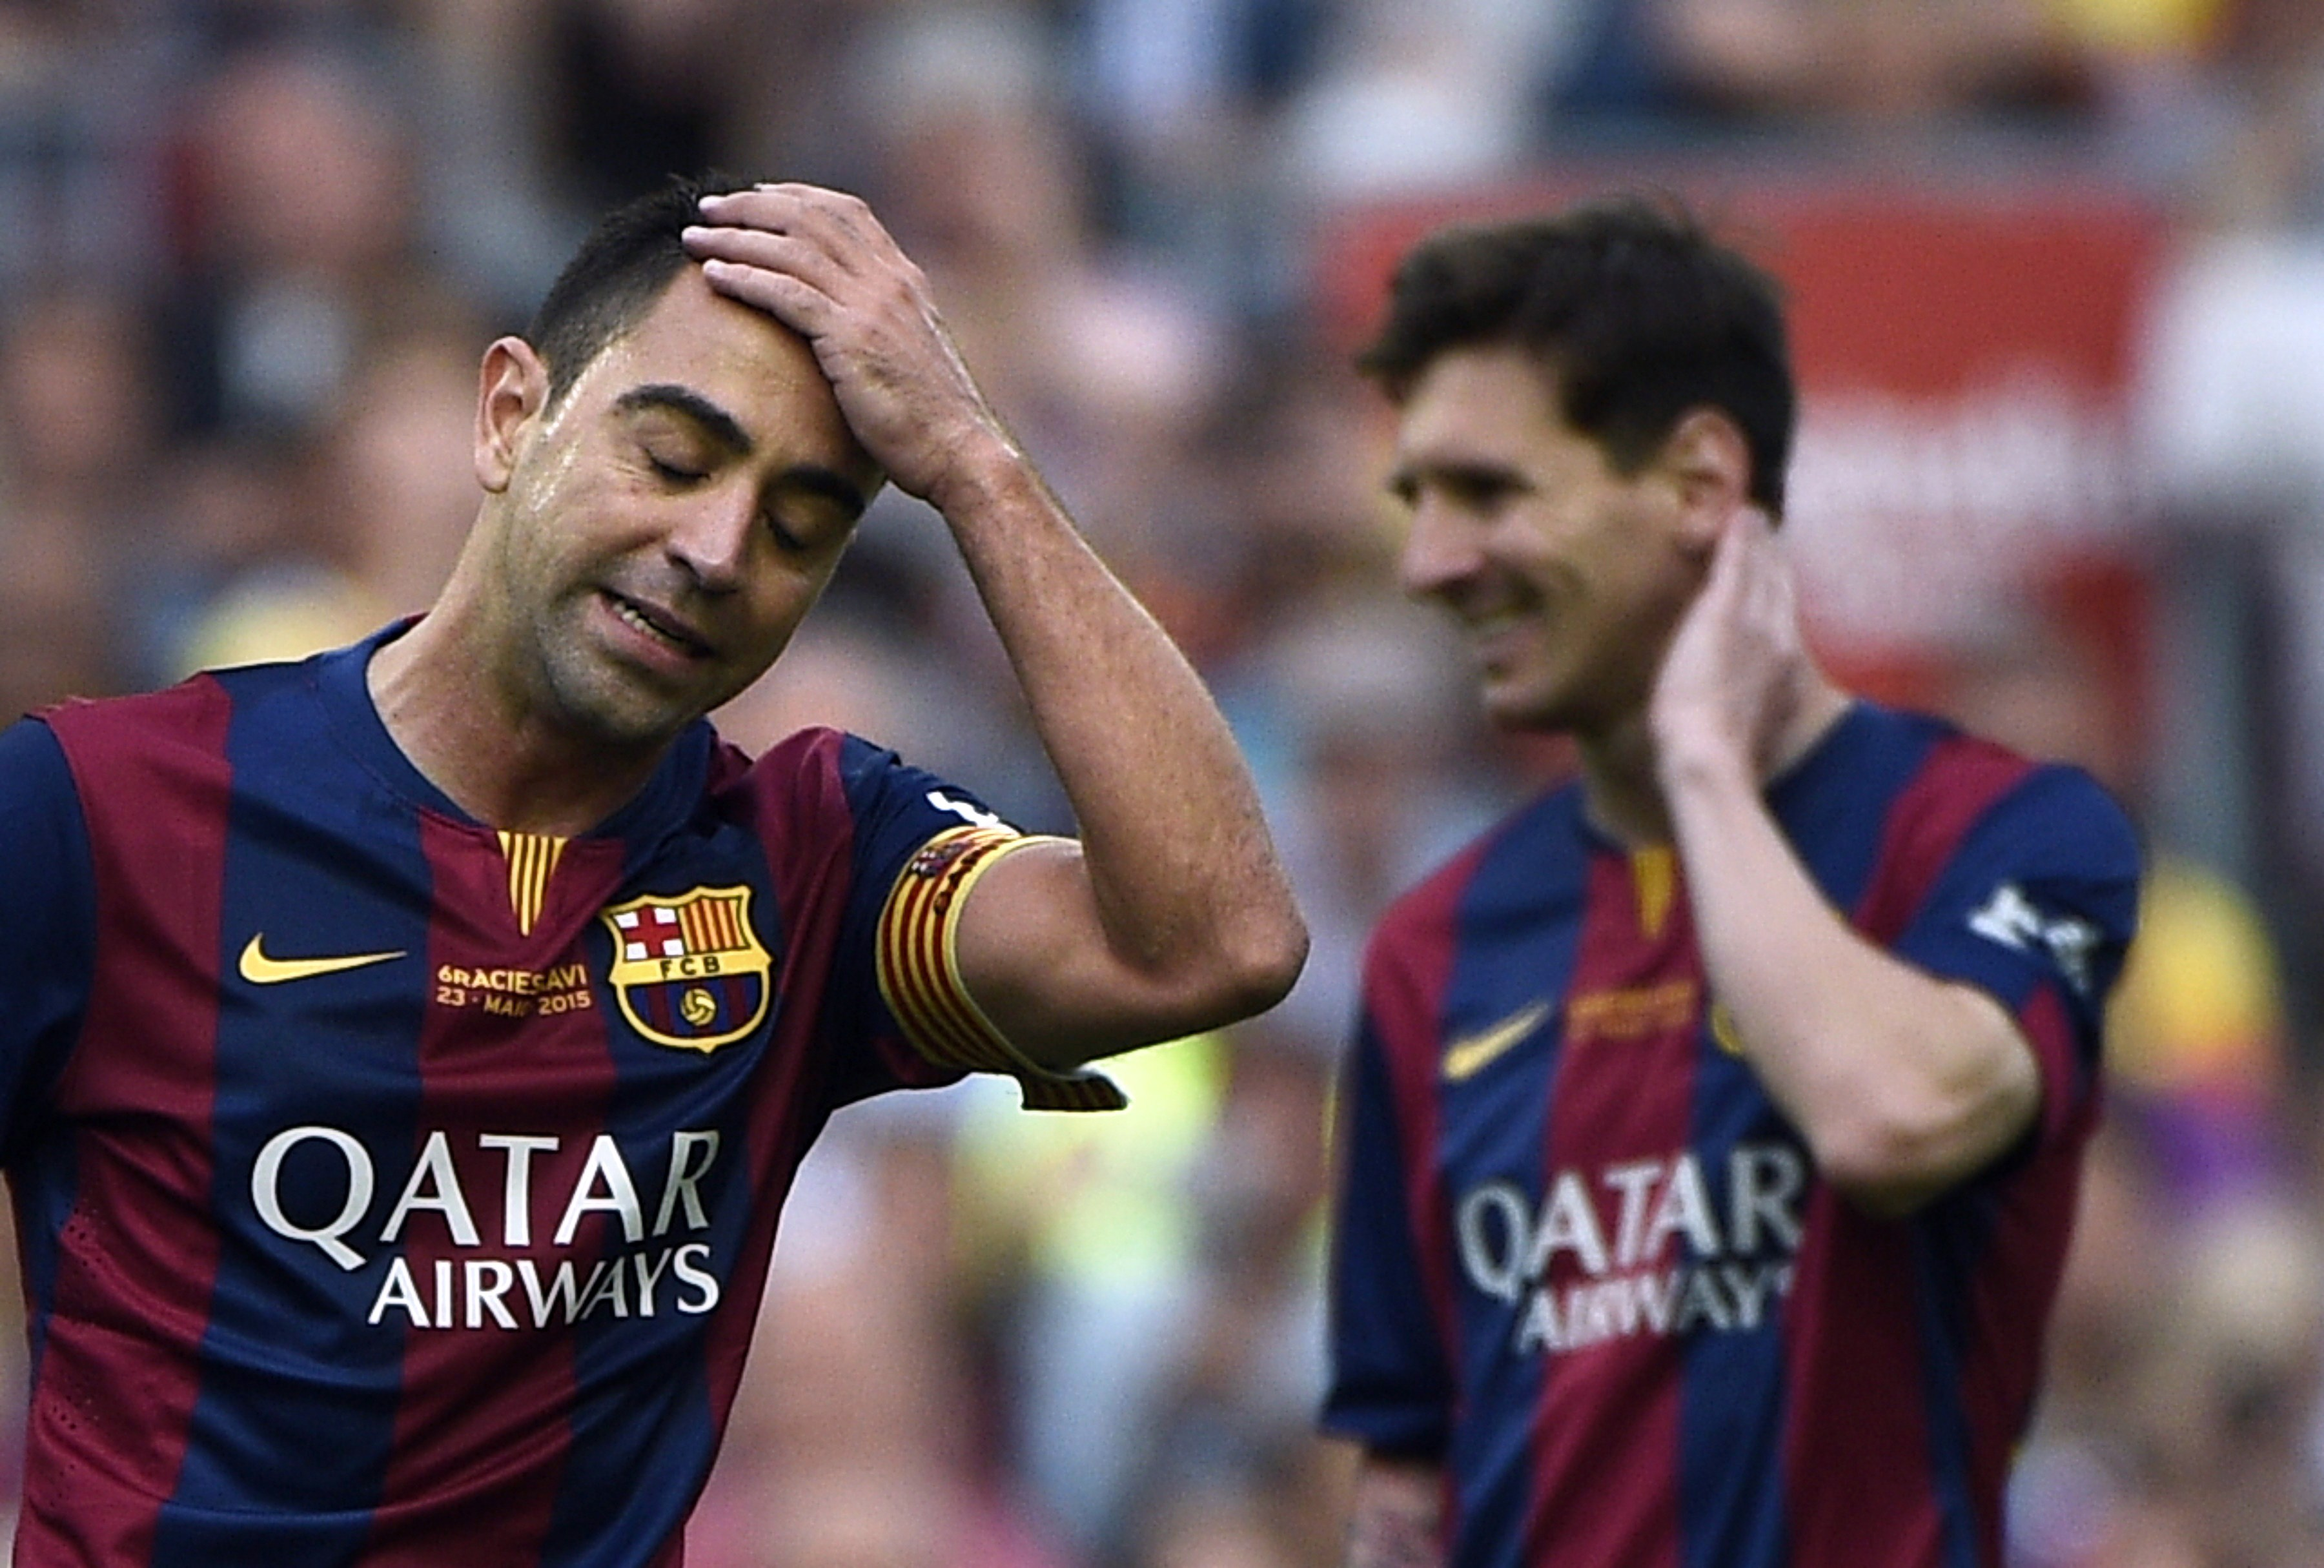 Xavi thinks Cristiano Ronaldo 'has the numbers' over Lionel Messi to win the Ballon d'Or